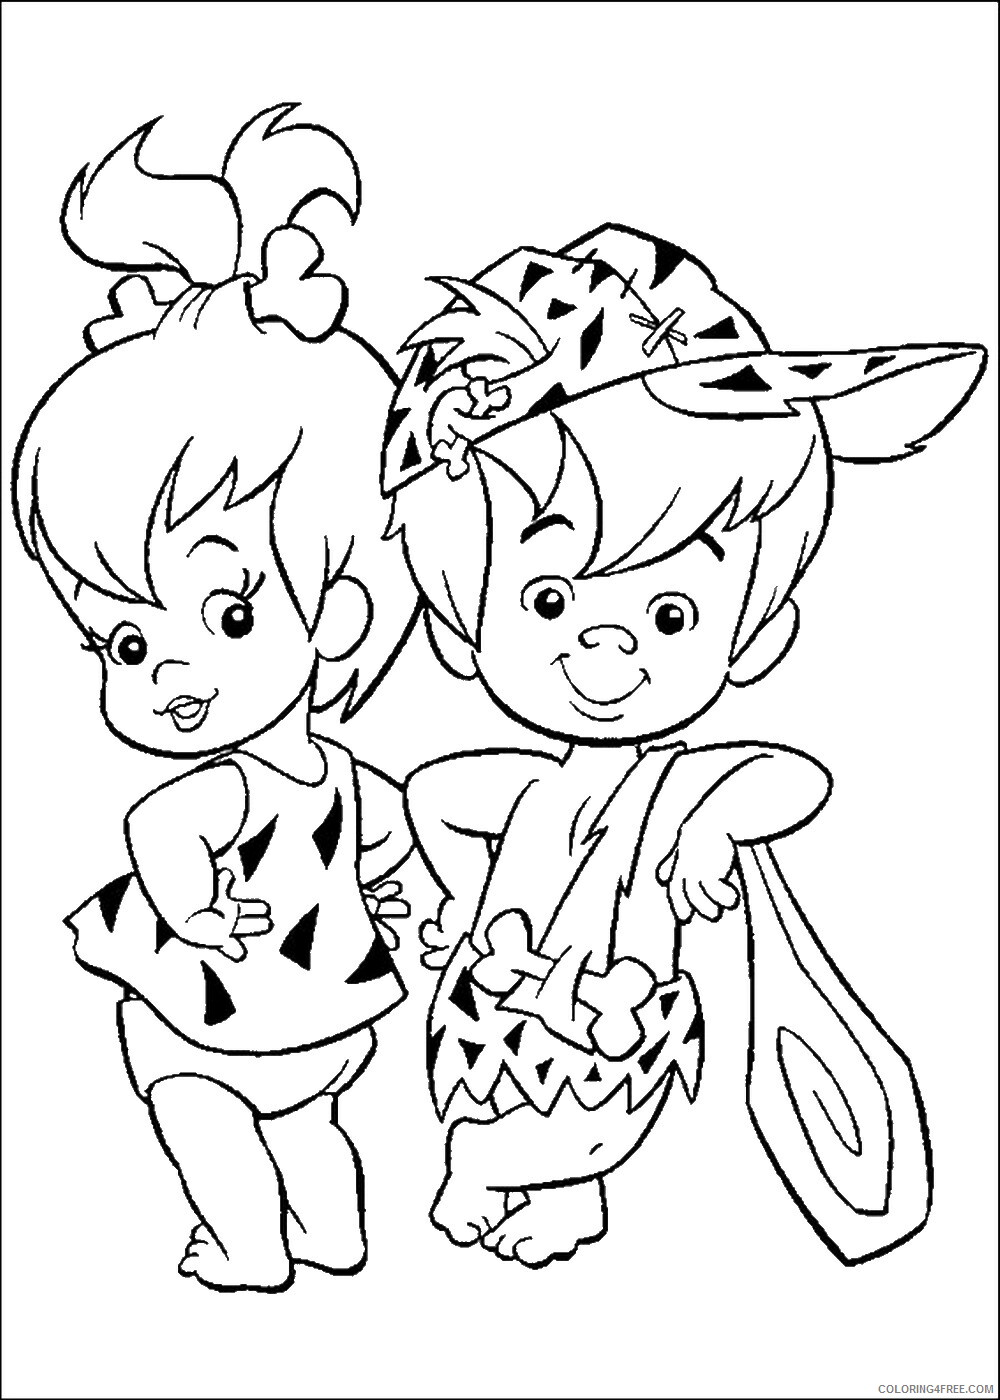 The Flintstones Coloring Pages TV Film flinstones_cl_22 Printable 2020 08739 Coloring4free